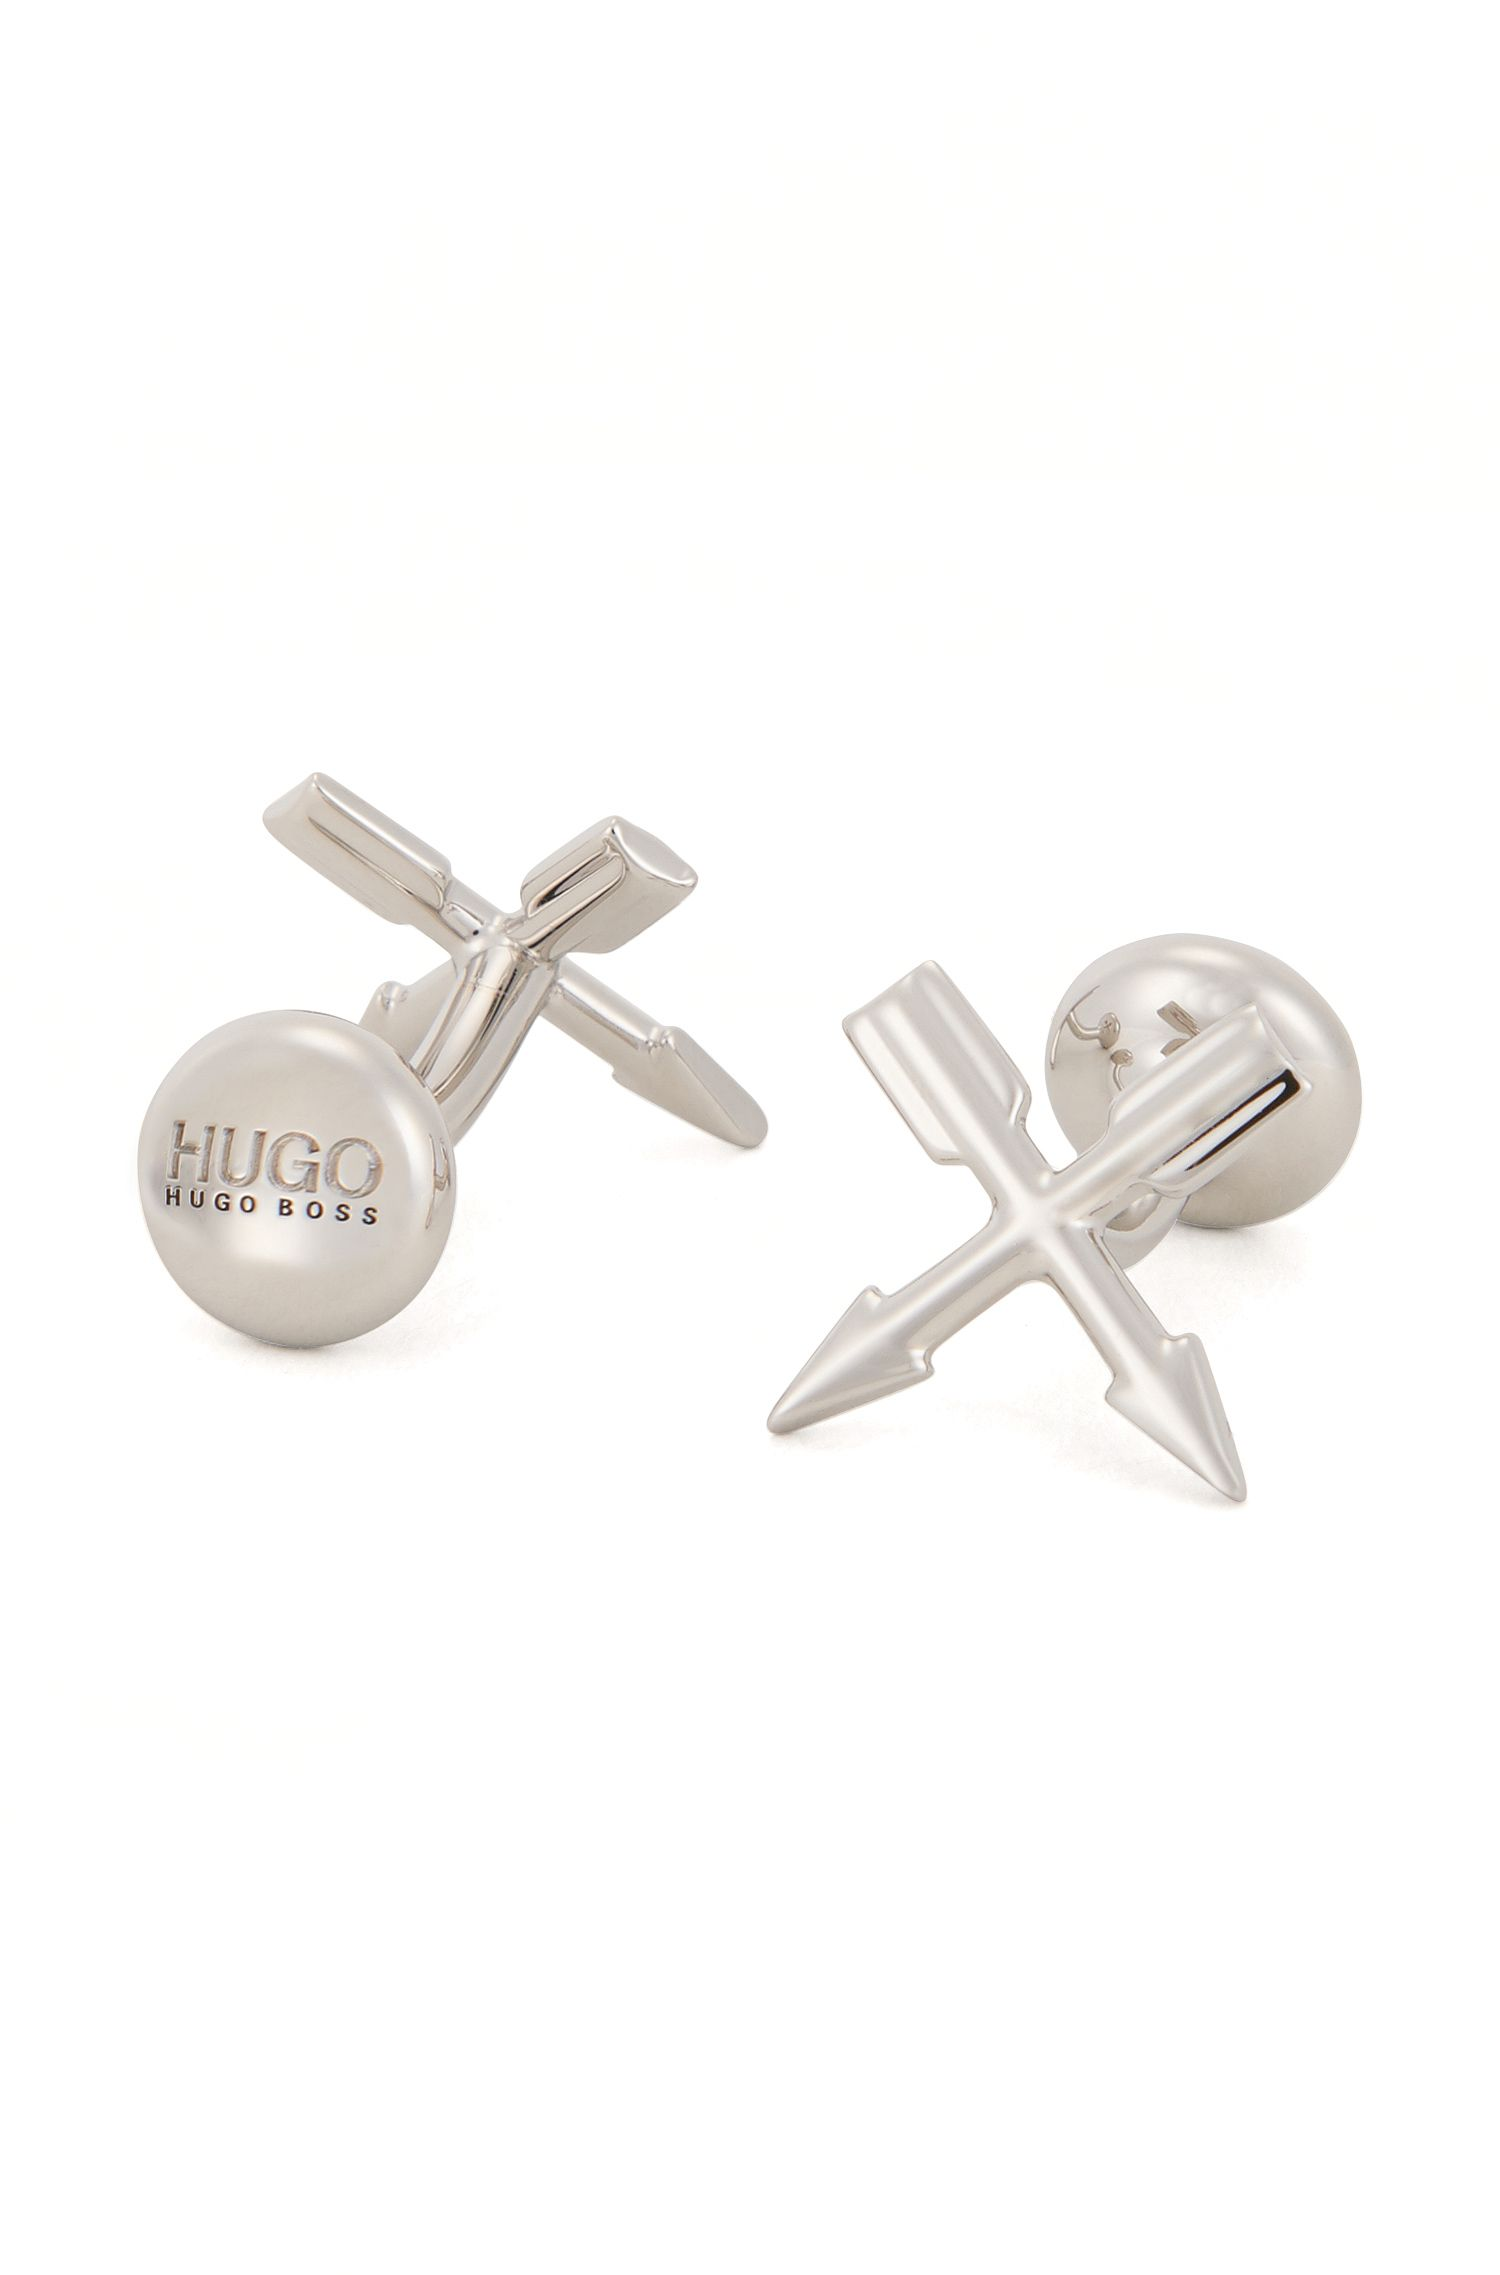 Arrow cufflinks in polished metal